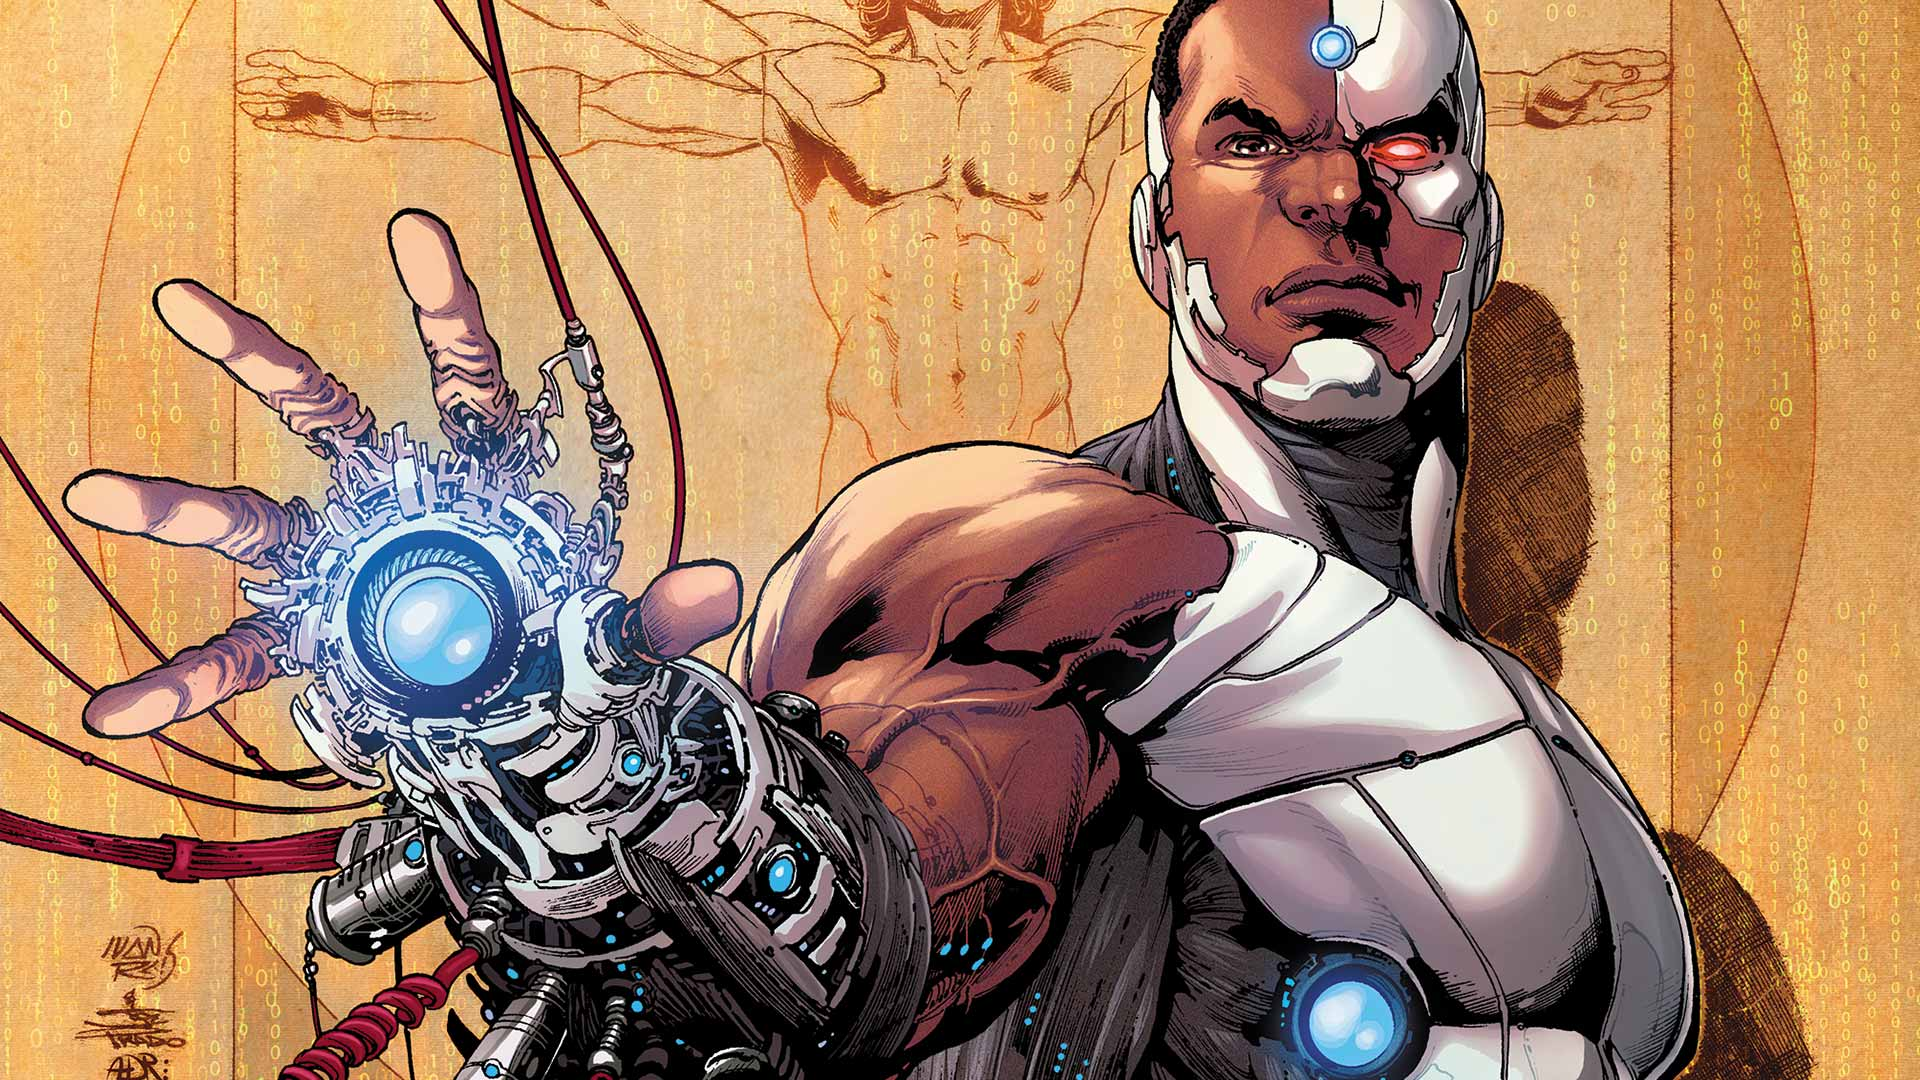 The character of 'Cyborg' in DC Comics